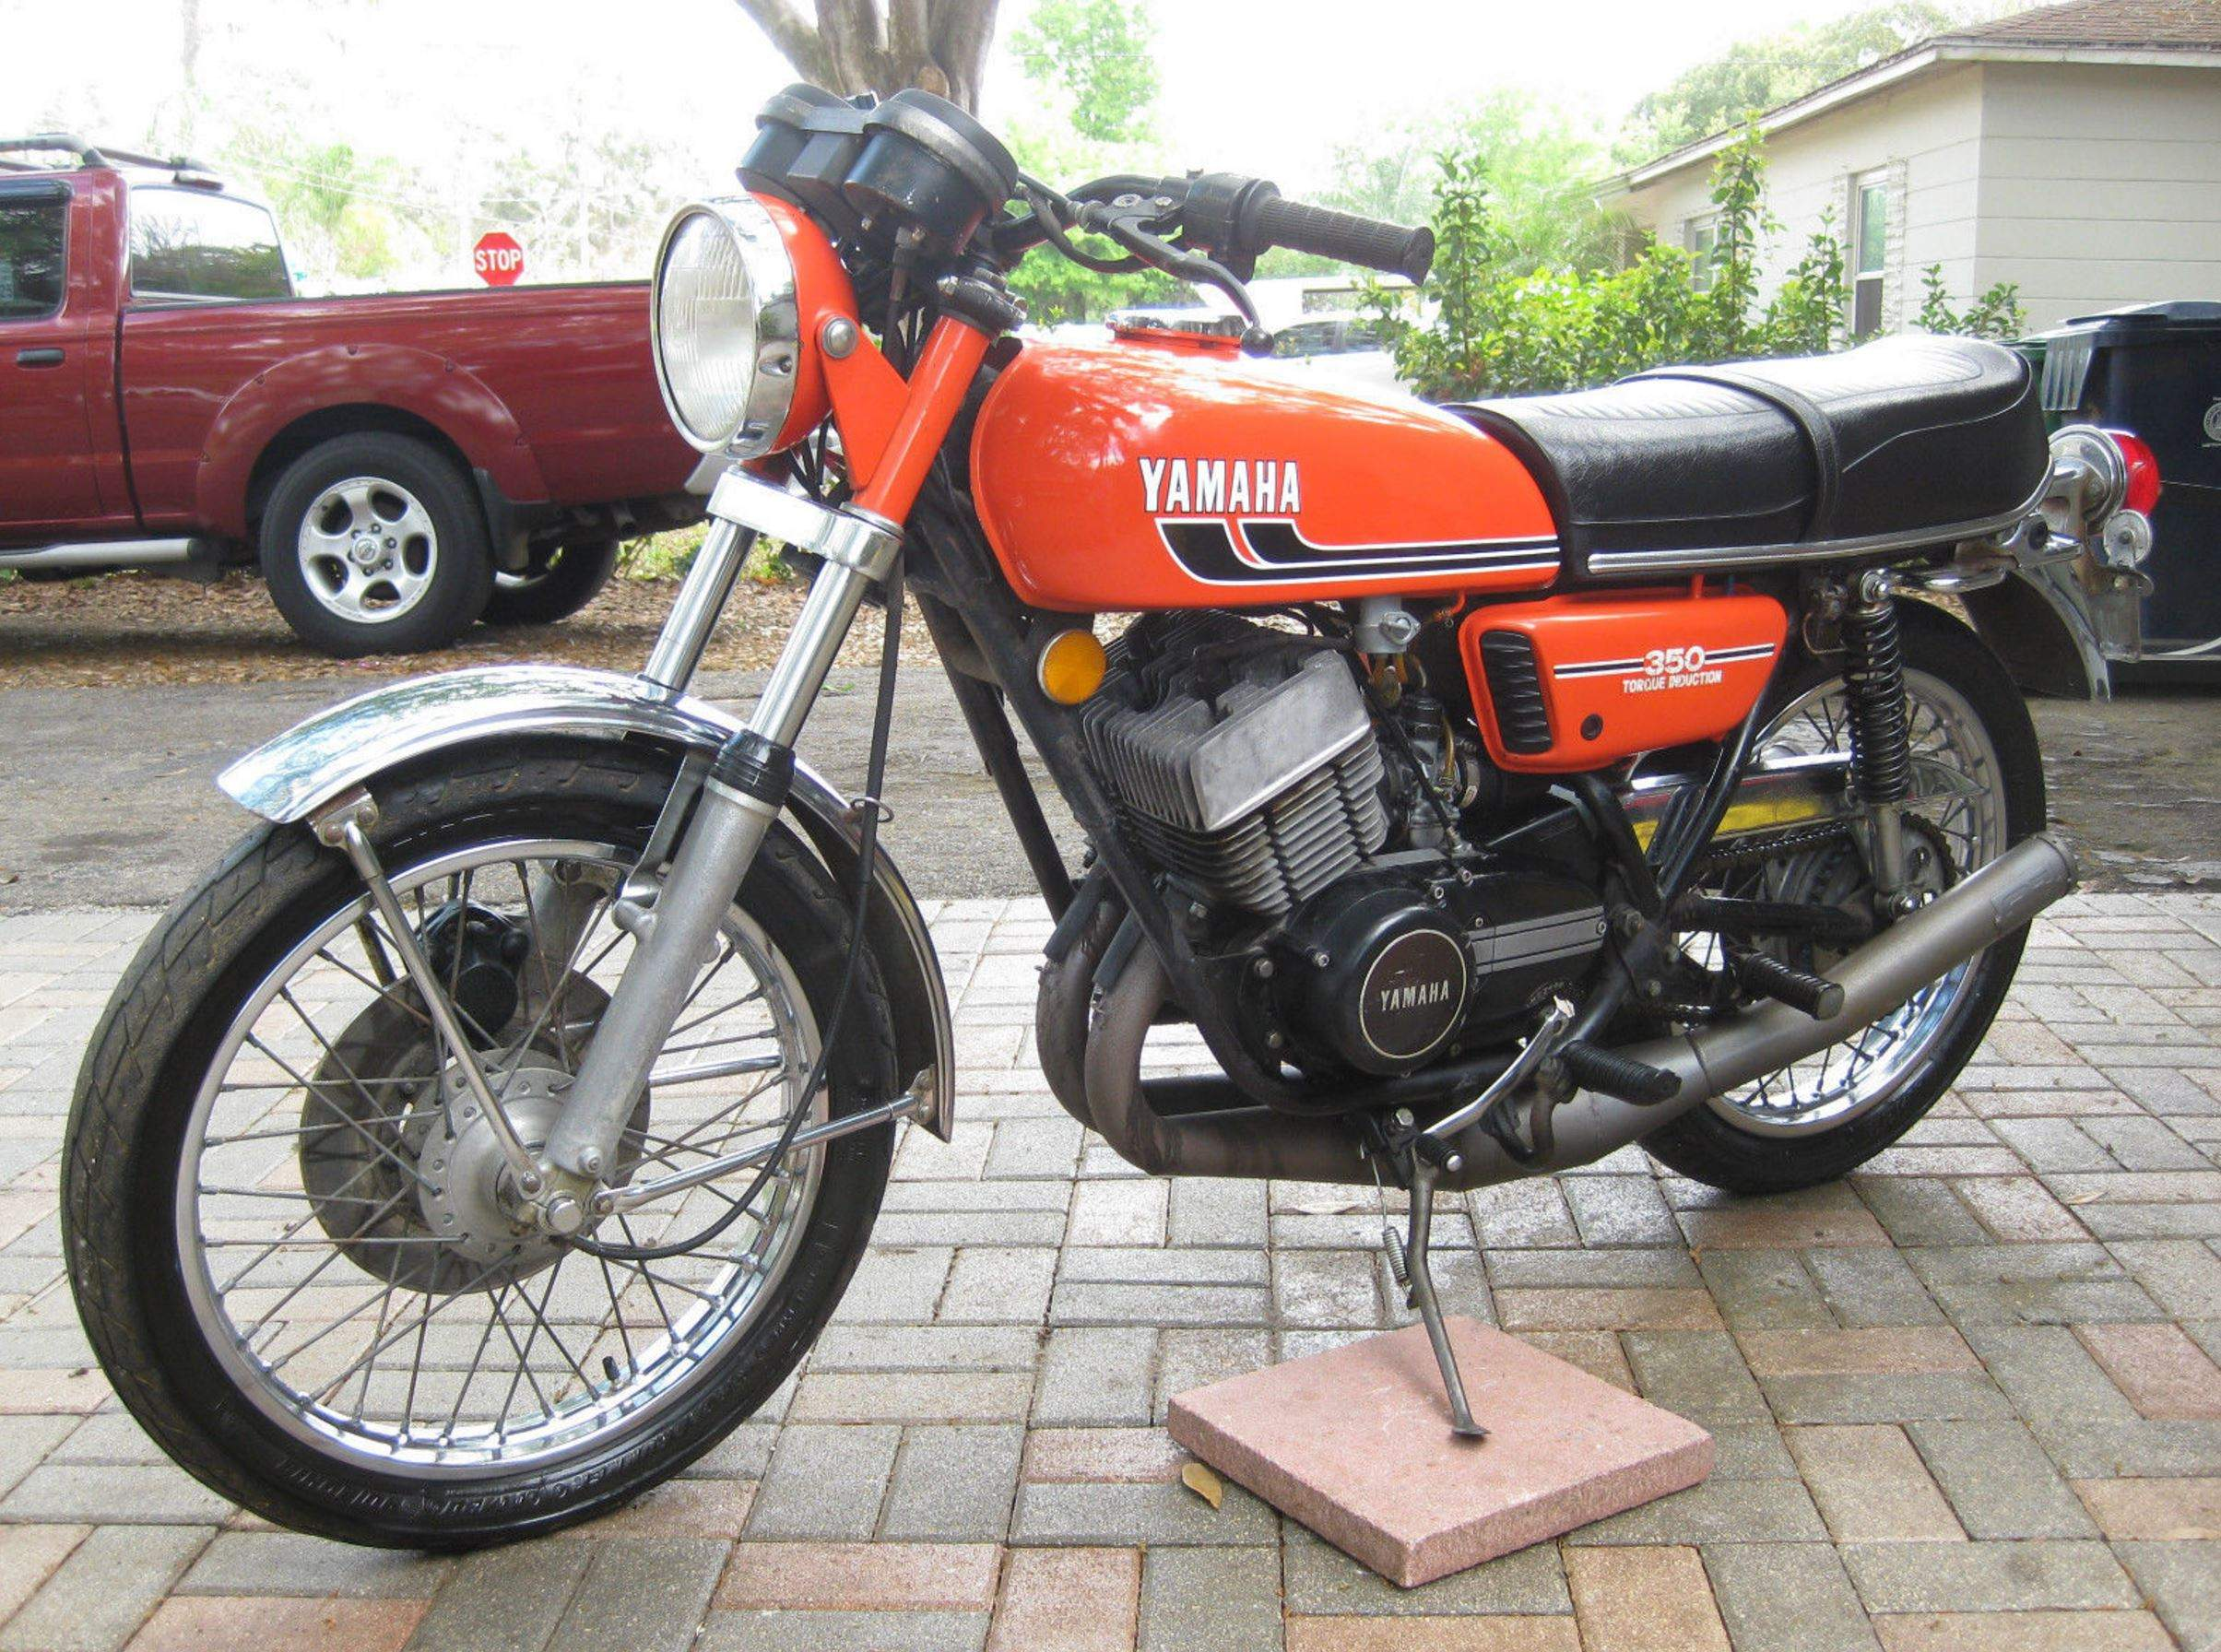 Yamaha-RD350-Left-Side-1.